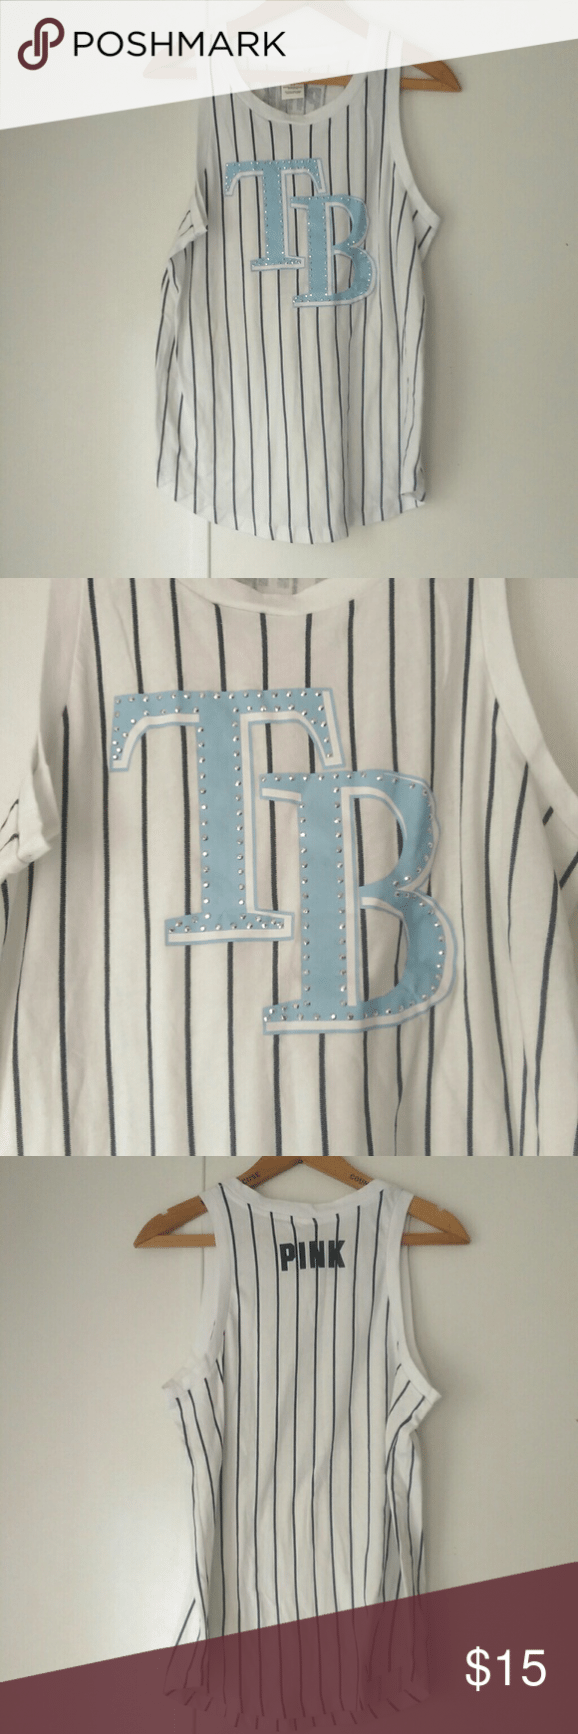 996e1bec PINK by Victoria's Secret Tampa Bay Rays Tank Tampa Bay Rays ...